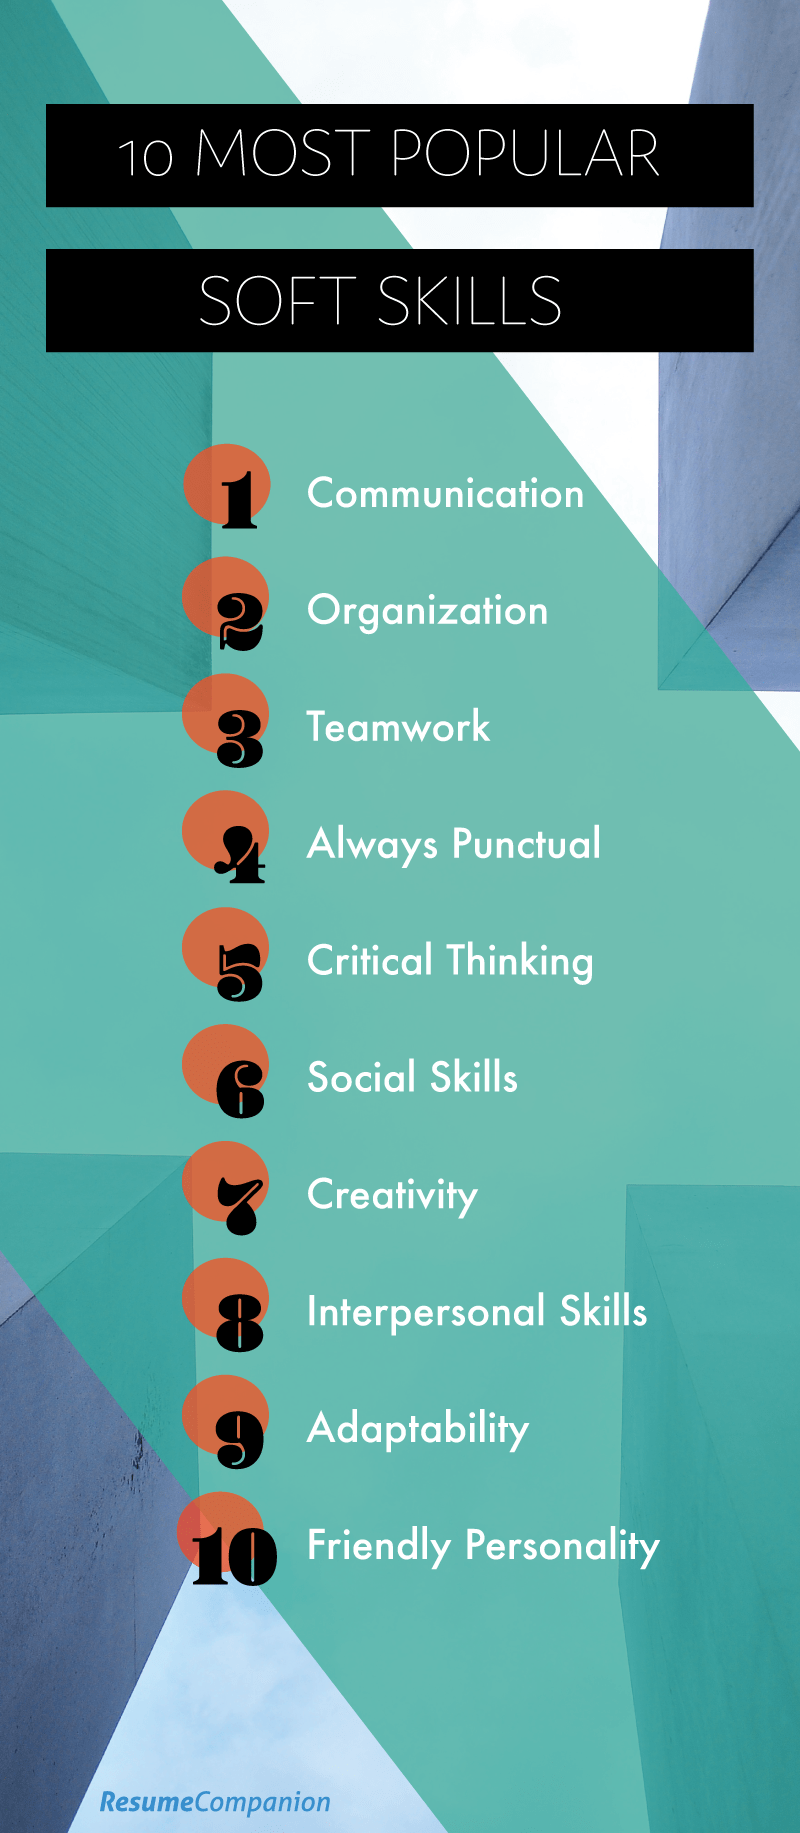 Top 10 Soft Skills For A Resume Employers Look For Infographic  Resume Skills To List